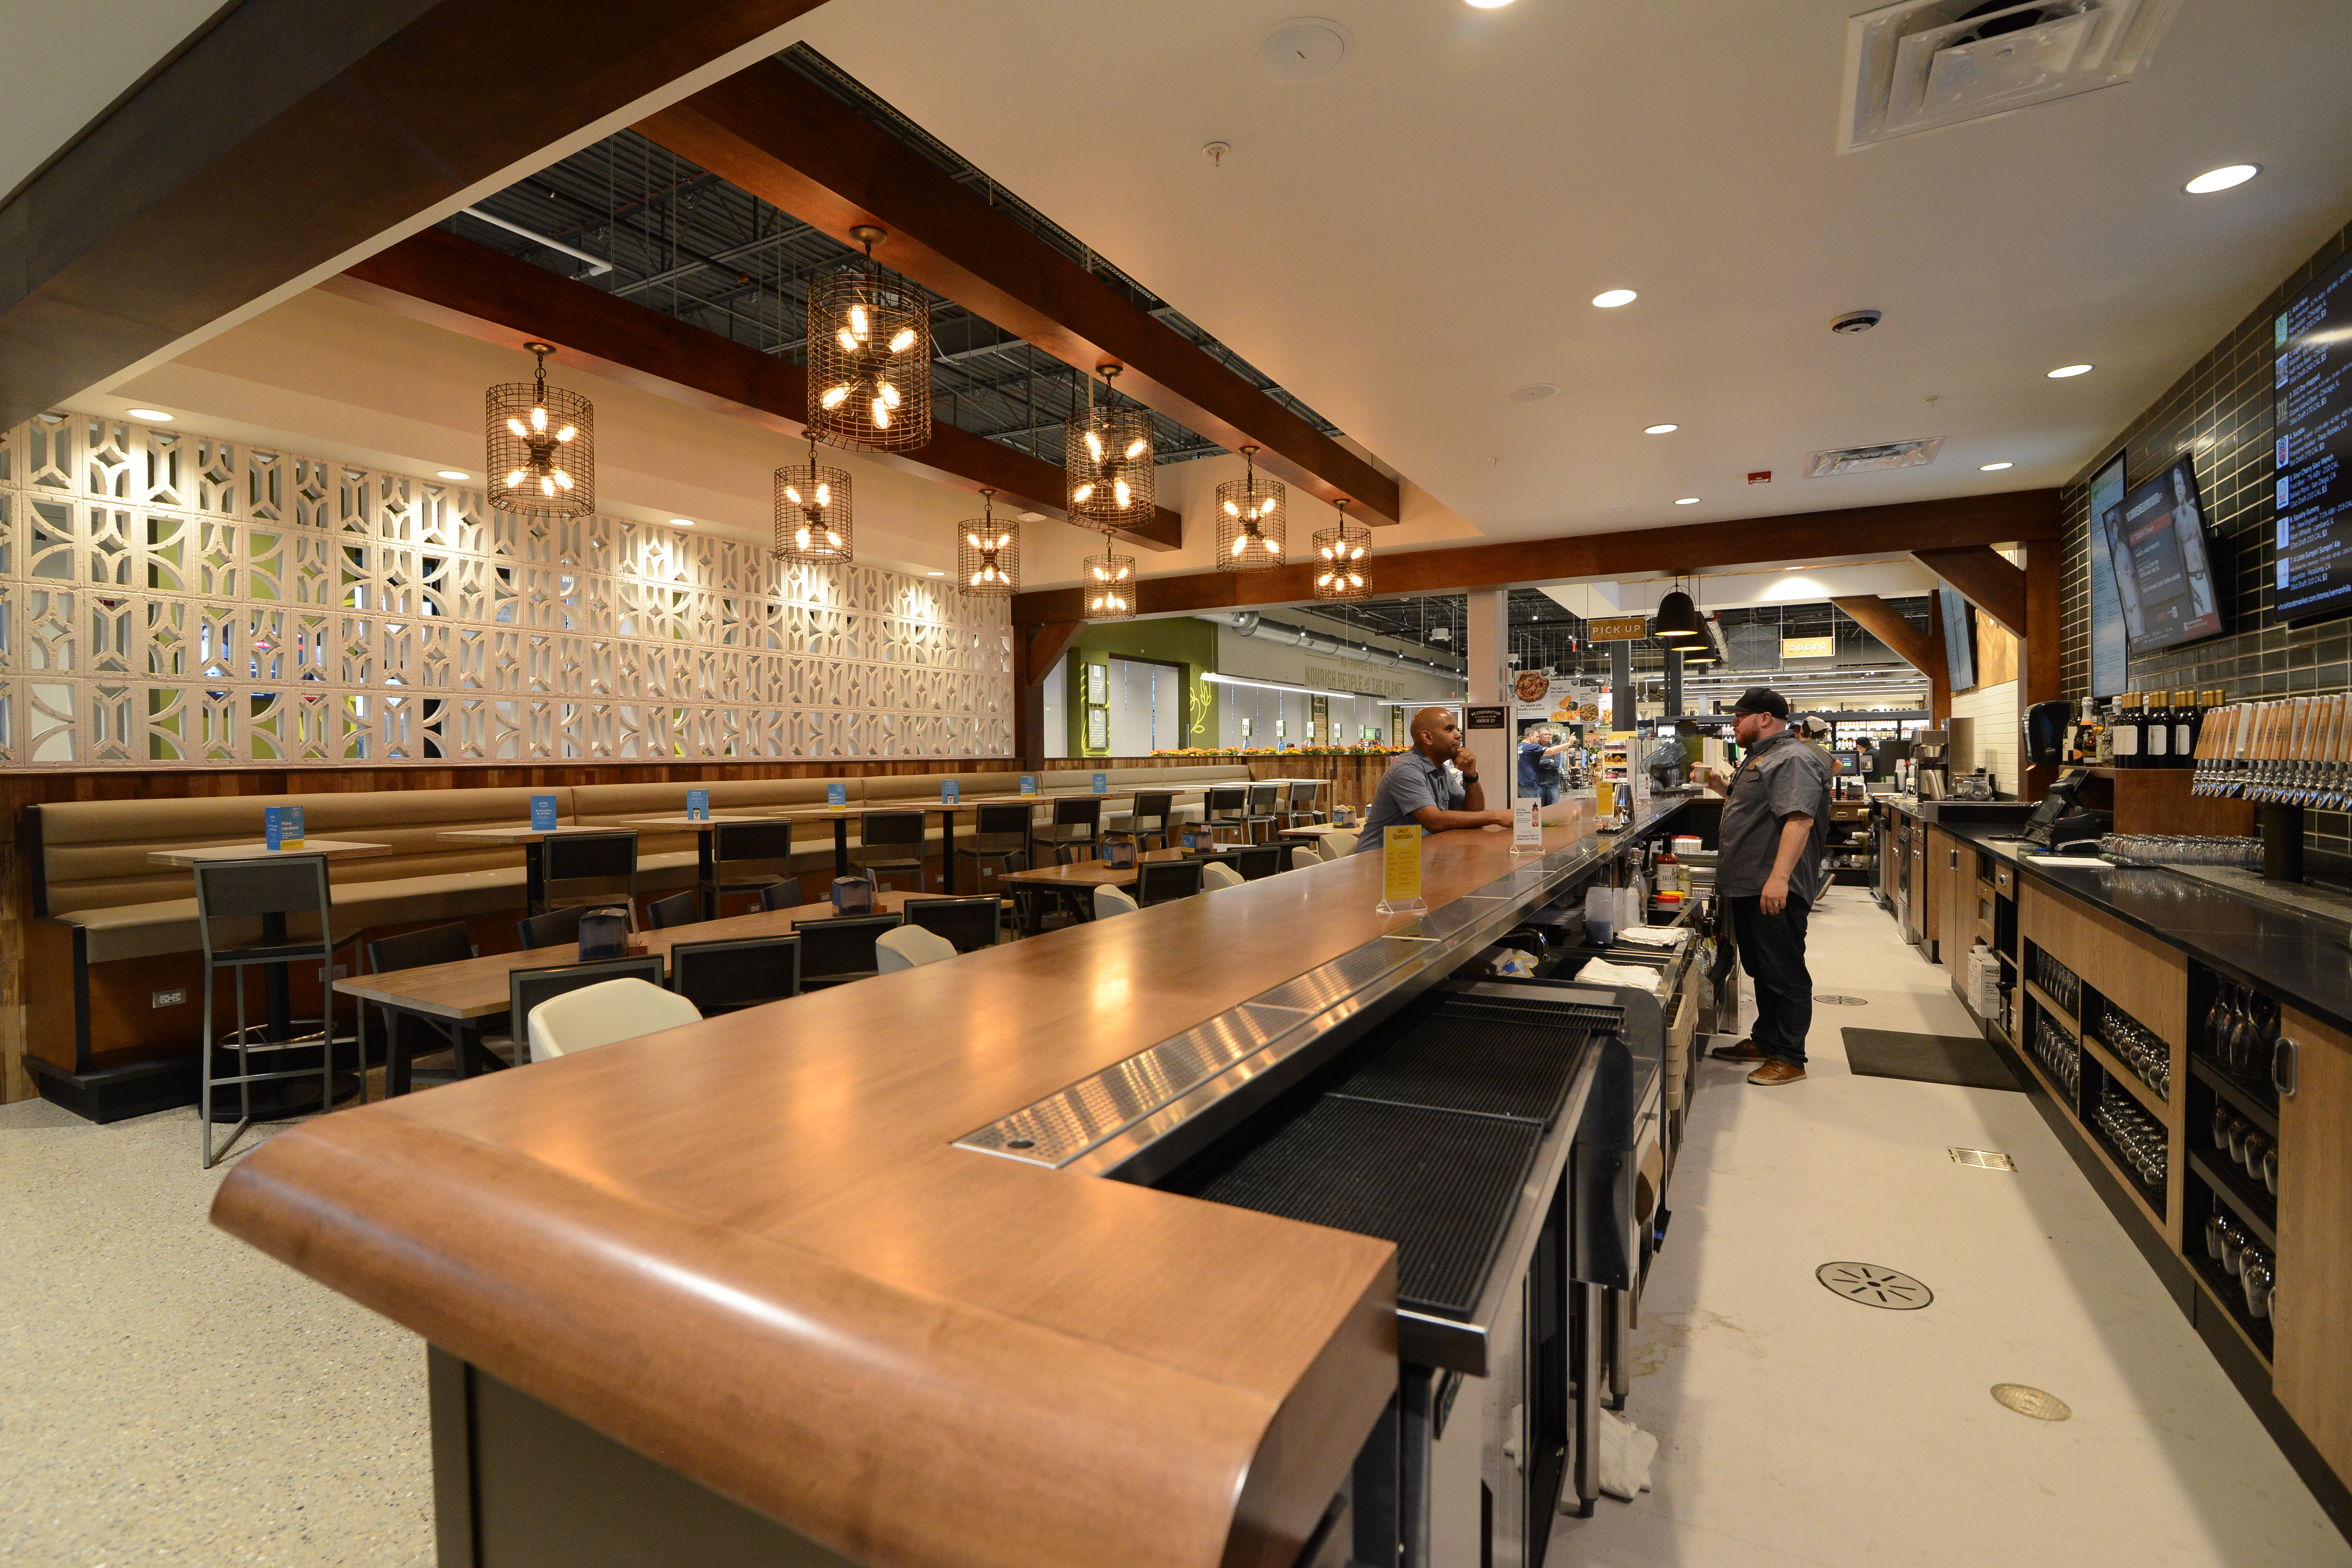 Townline Tap Whole Foods Market